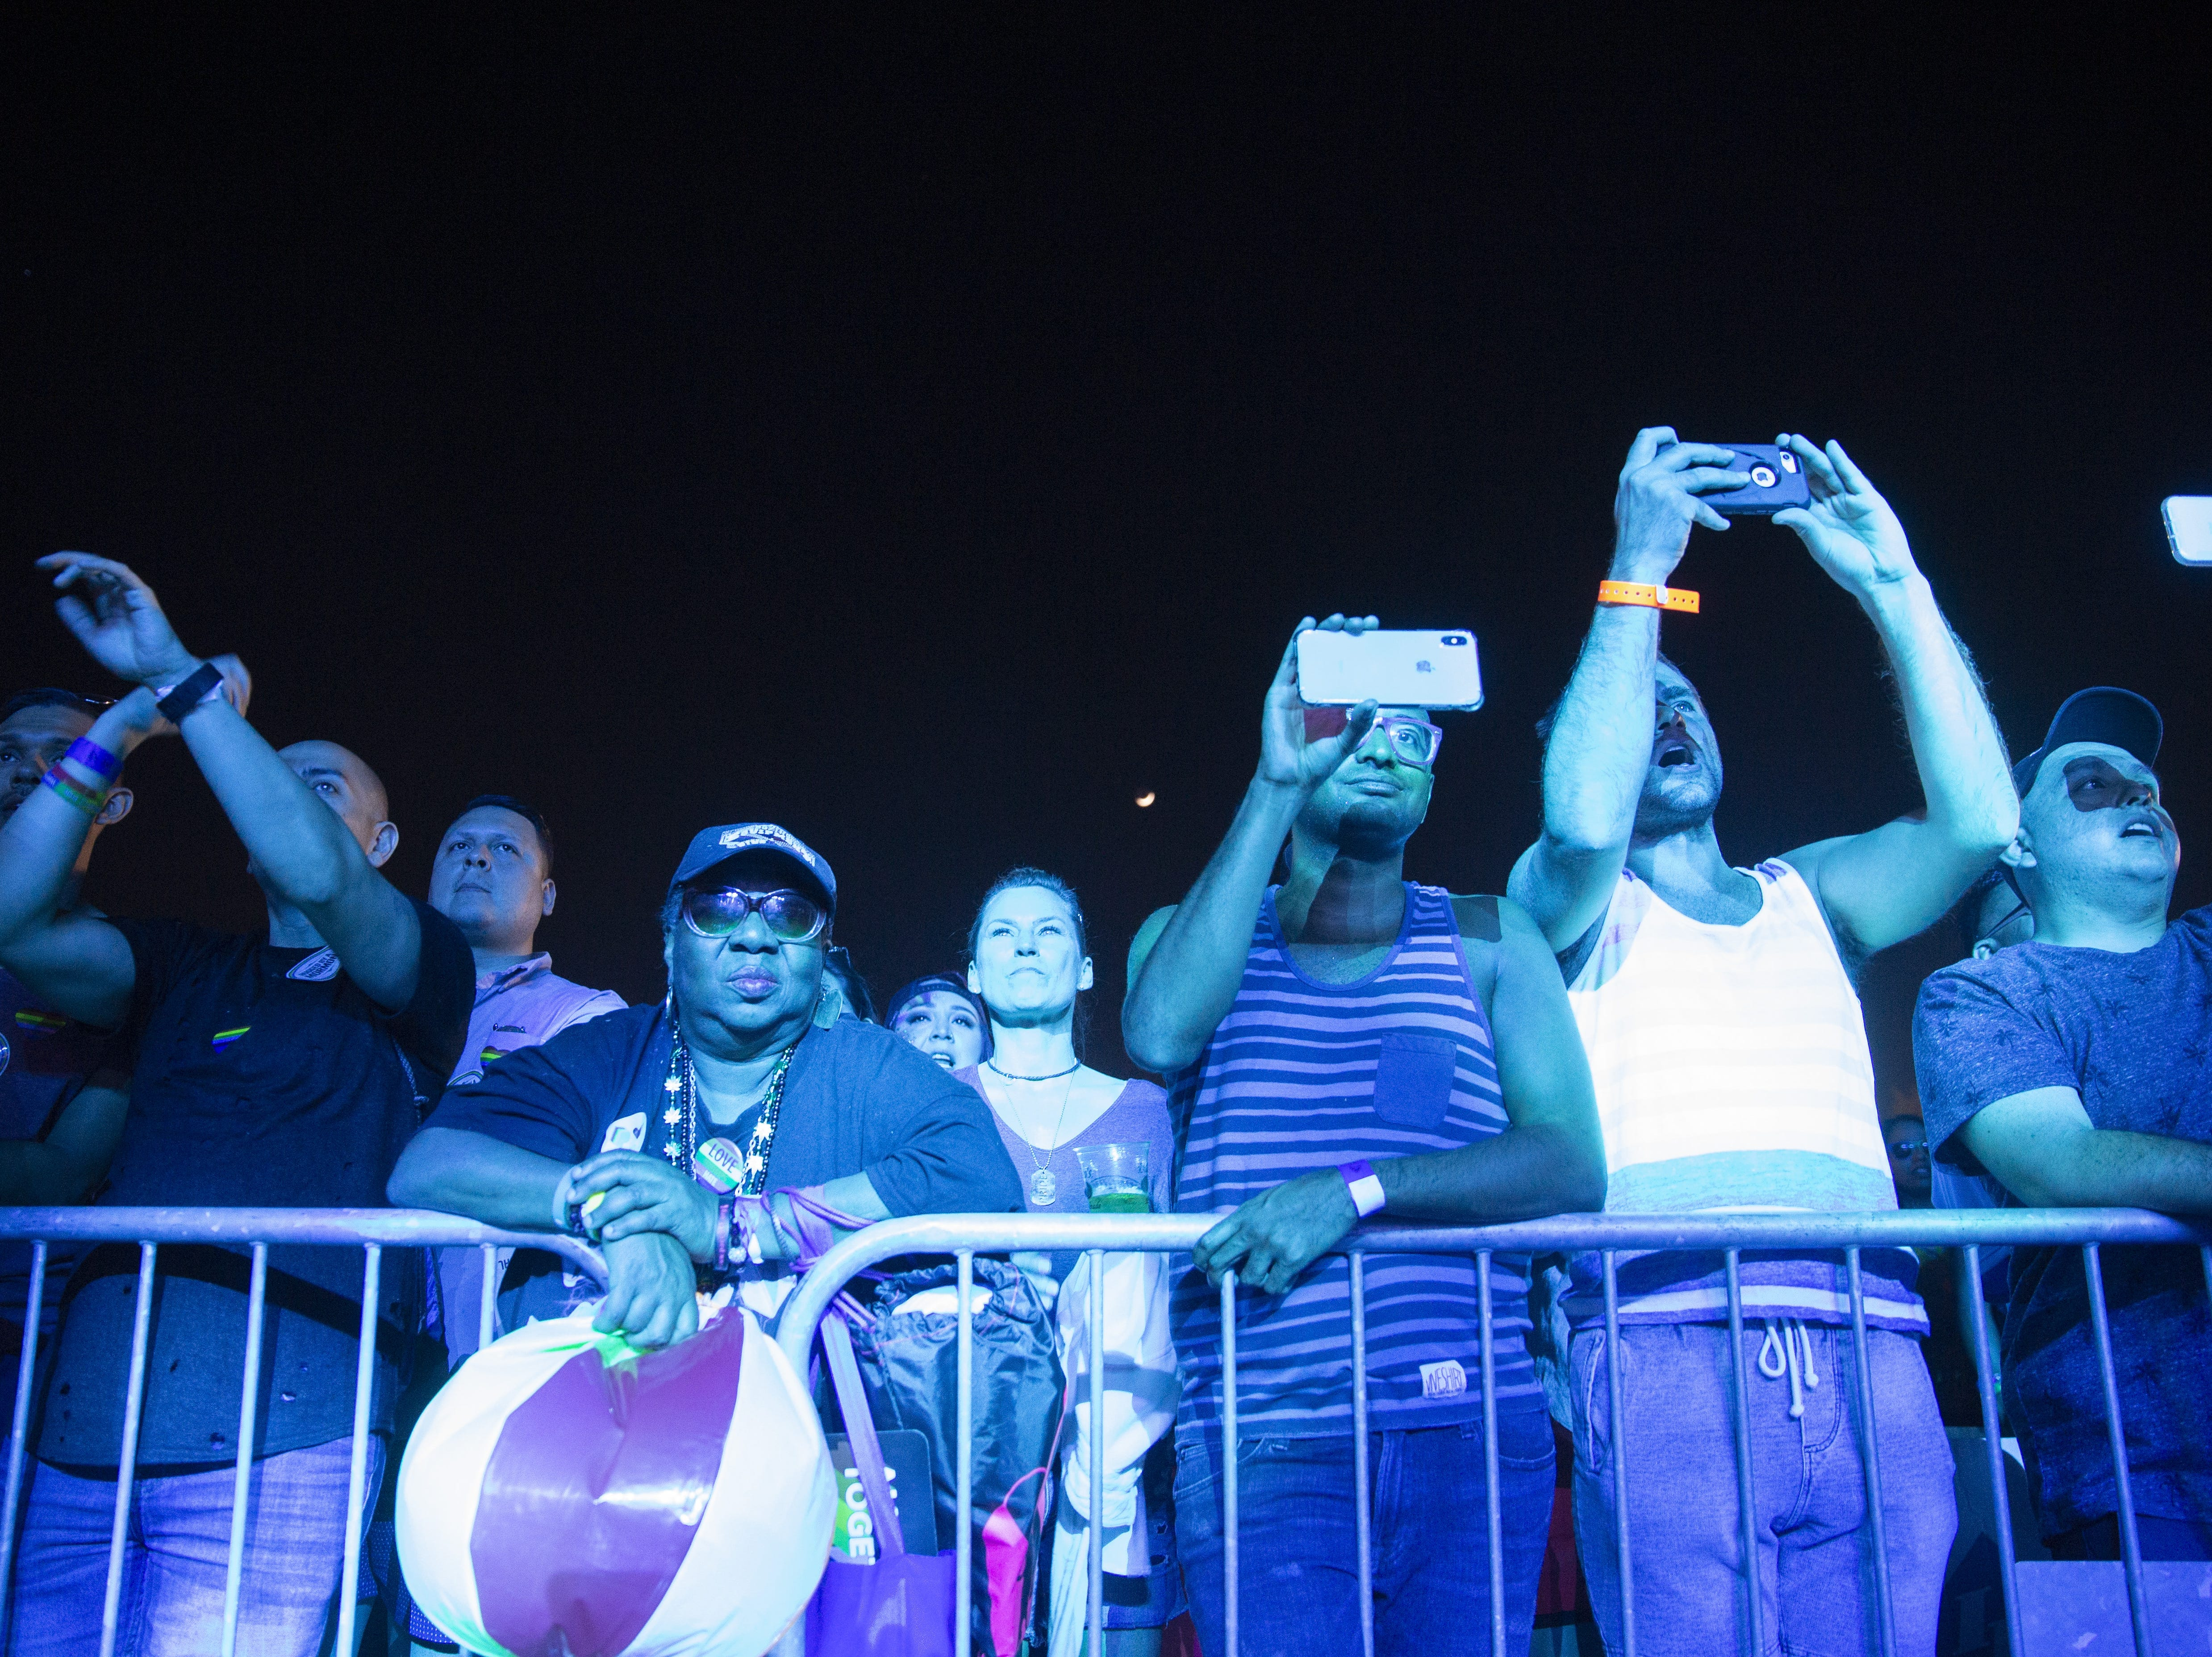 The crowd at the main stage films performers with their phones during Phoenix Pride at Steele Indian School Park on April 7, 2019.